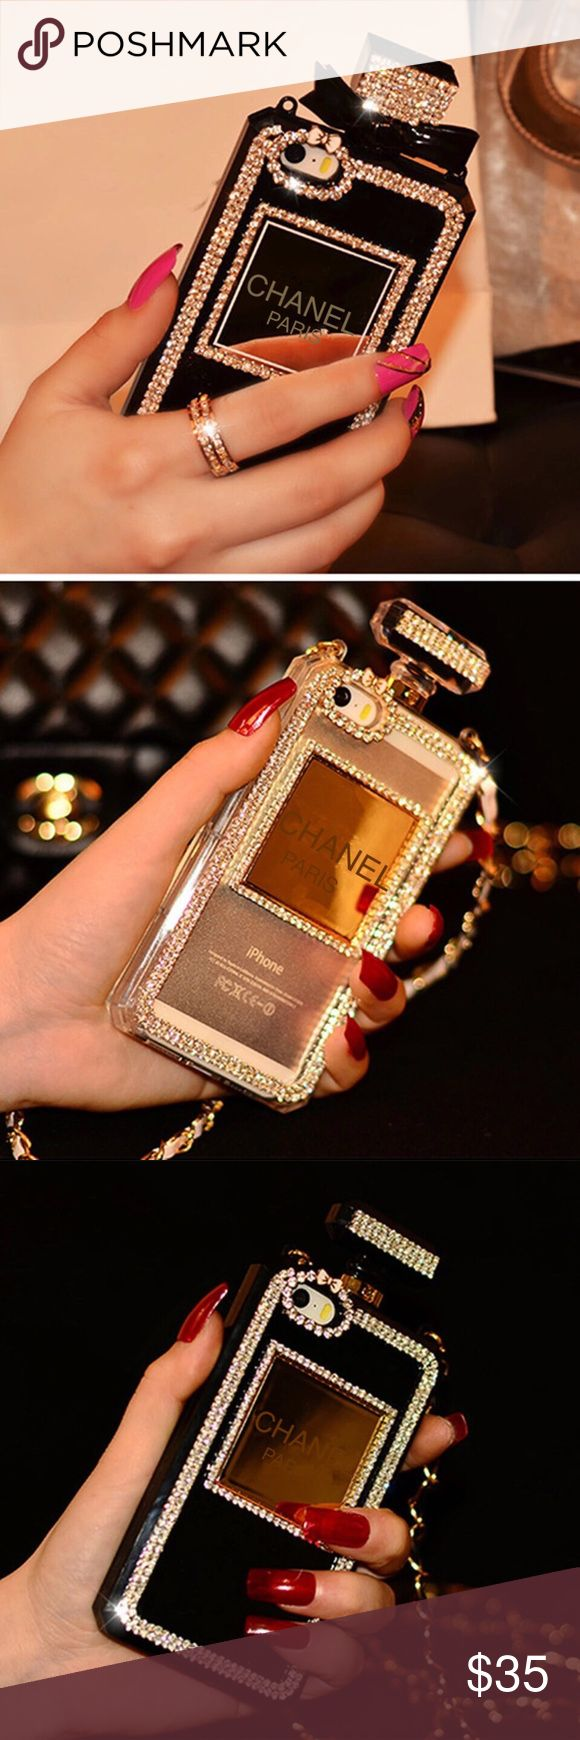 iPhone 6 and 7 Rhinestone Phone Case Brand new Chanel Paris Rhinestone perfume bottle iPhone 6 and 7 phone case. Choose from white or black. Detachable chain. No bow attached at top. Fits both iPhone 6 and 7. Price Firm. RIIBS Accessories Phone Cases #iphone6cases,